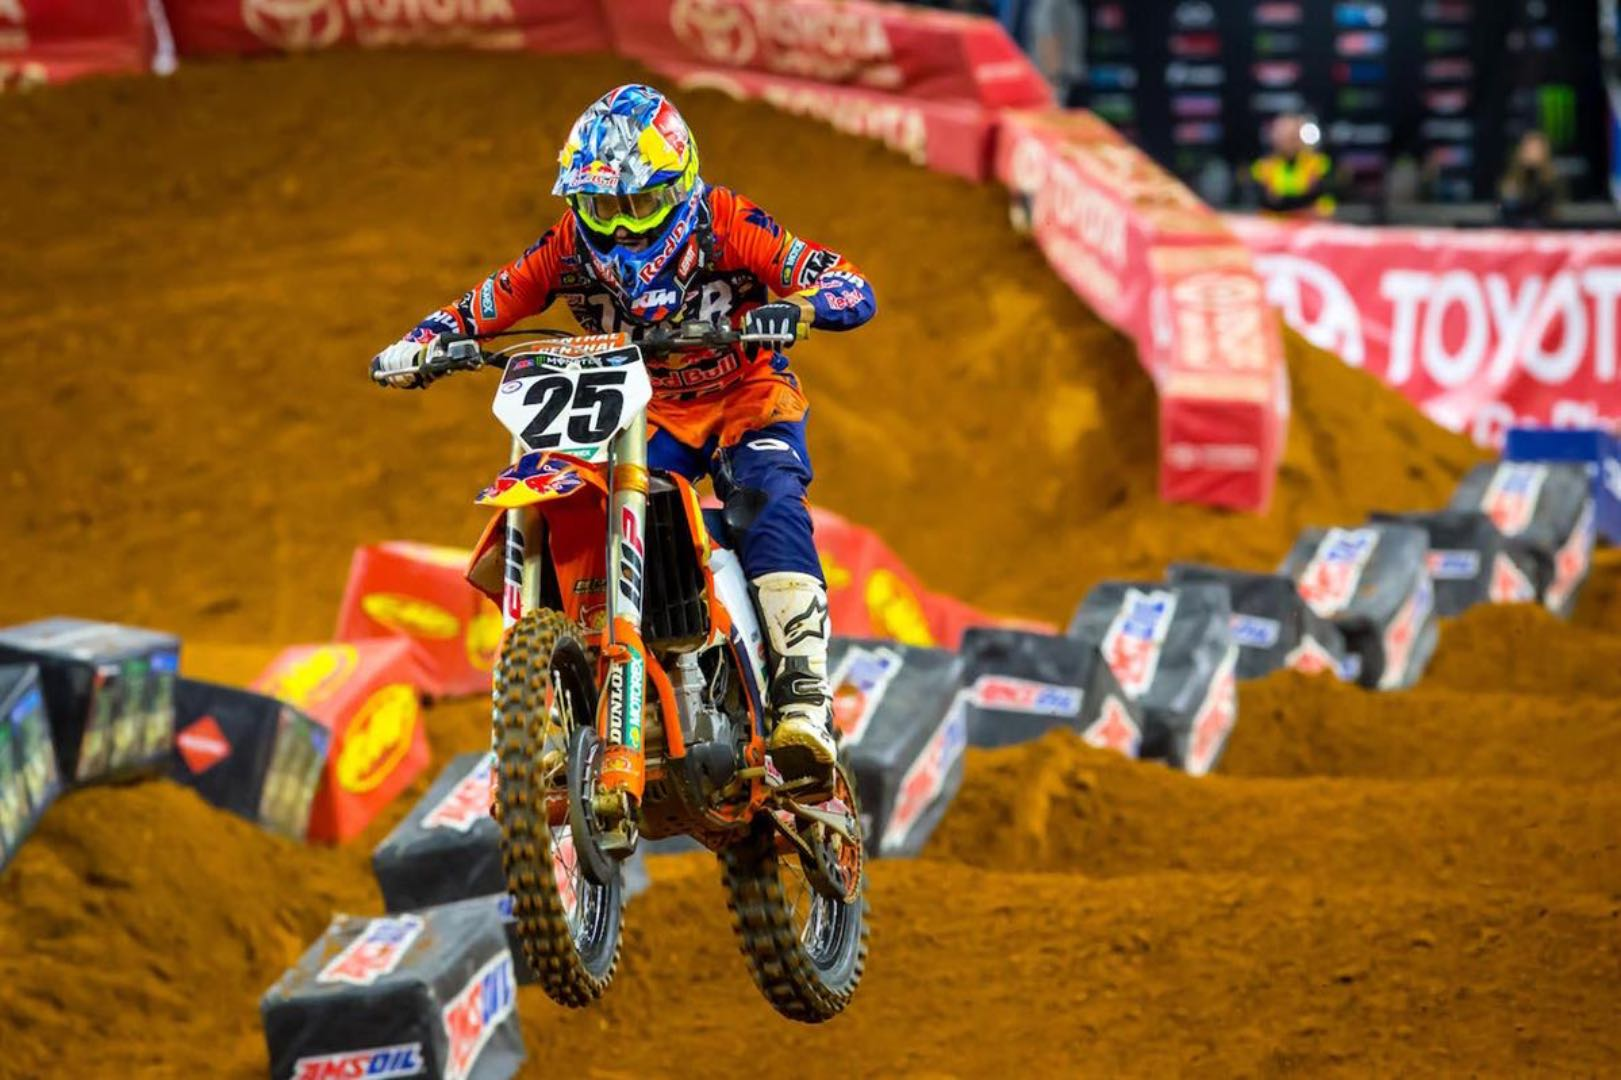 2019 Anaheim 1 Supercross Preview KTM Marvin Musquin